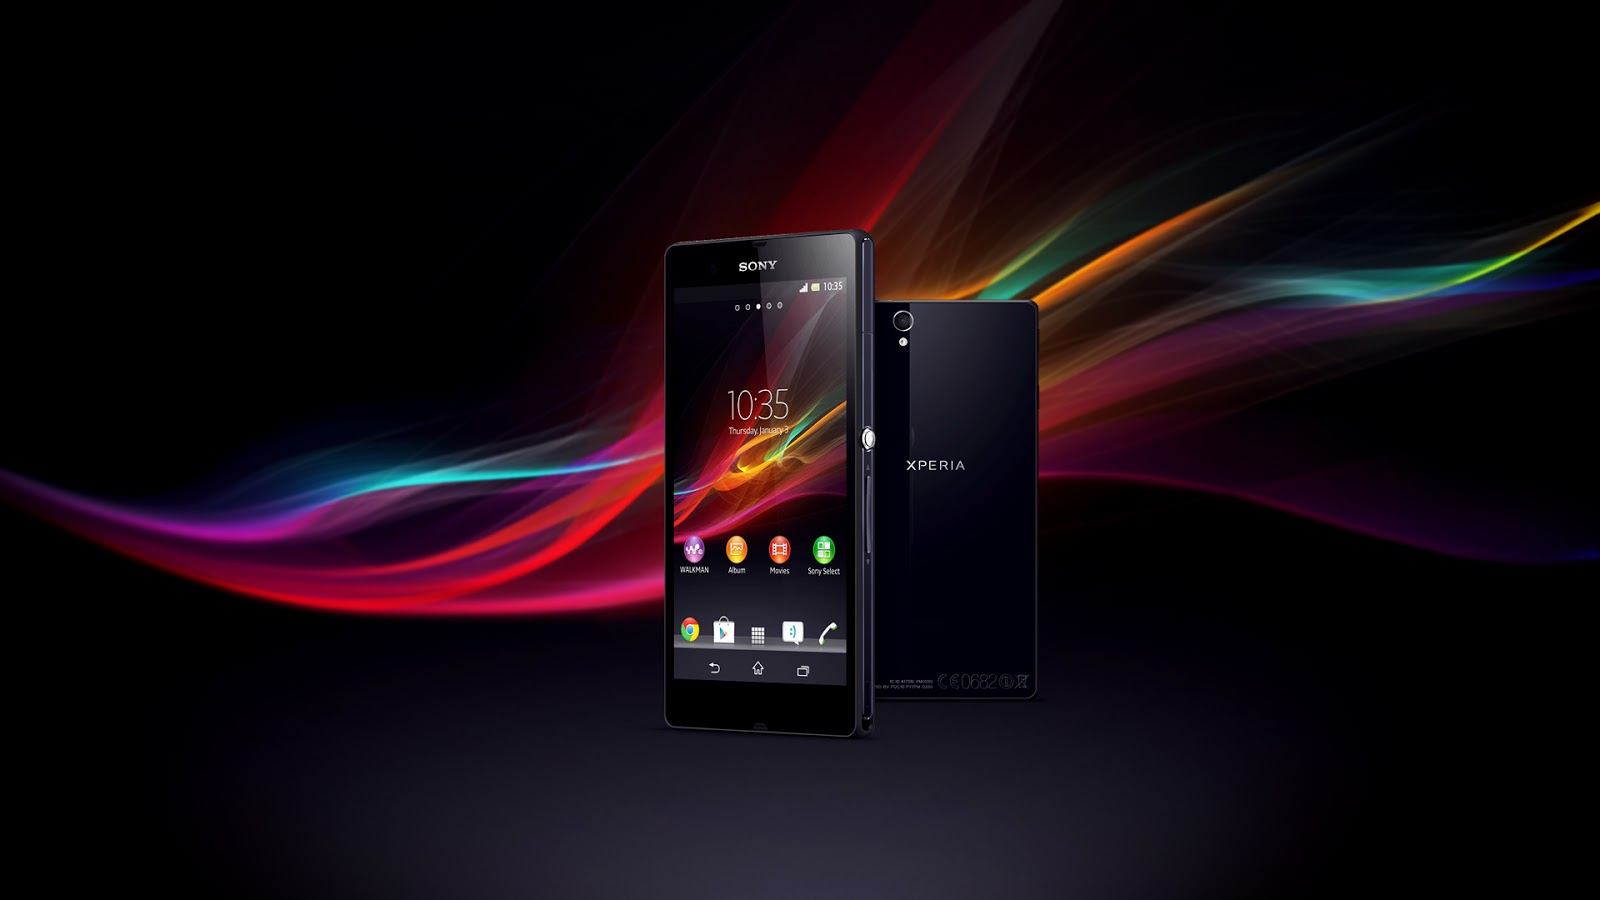 sony ericsson xperia z hd wallpapers